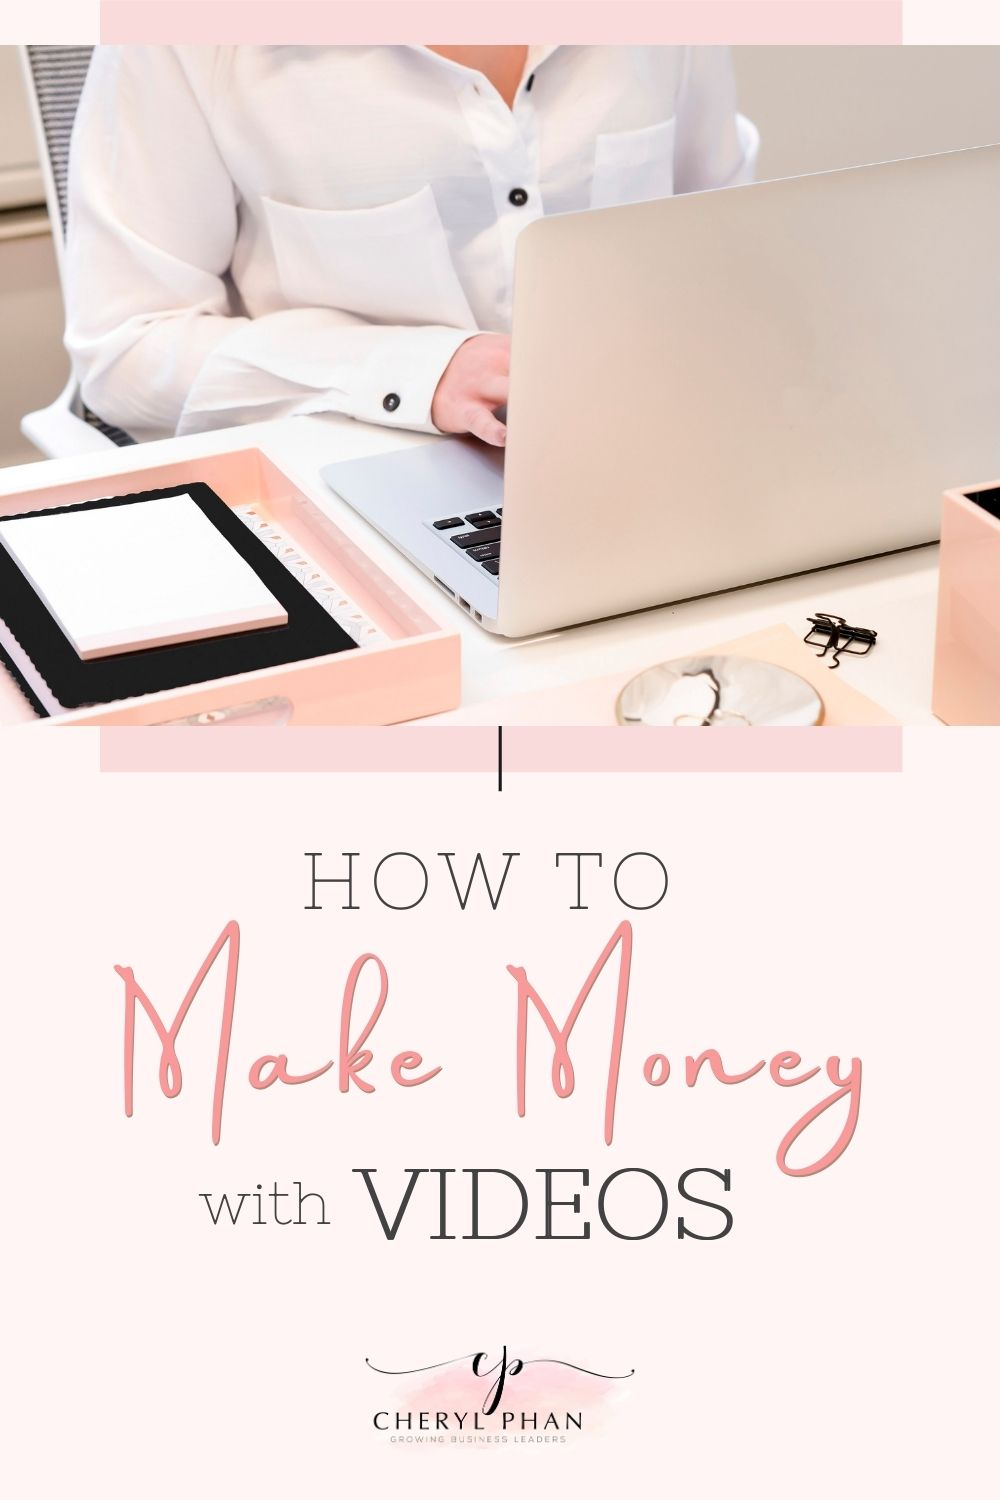 How to Make Money with Videos by Cheryl Phan